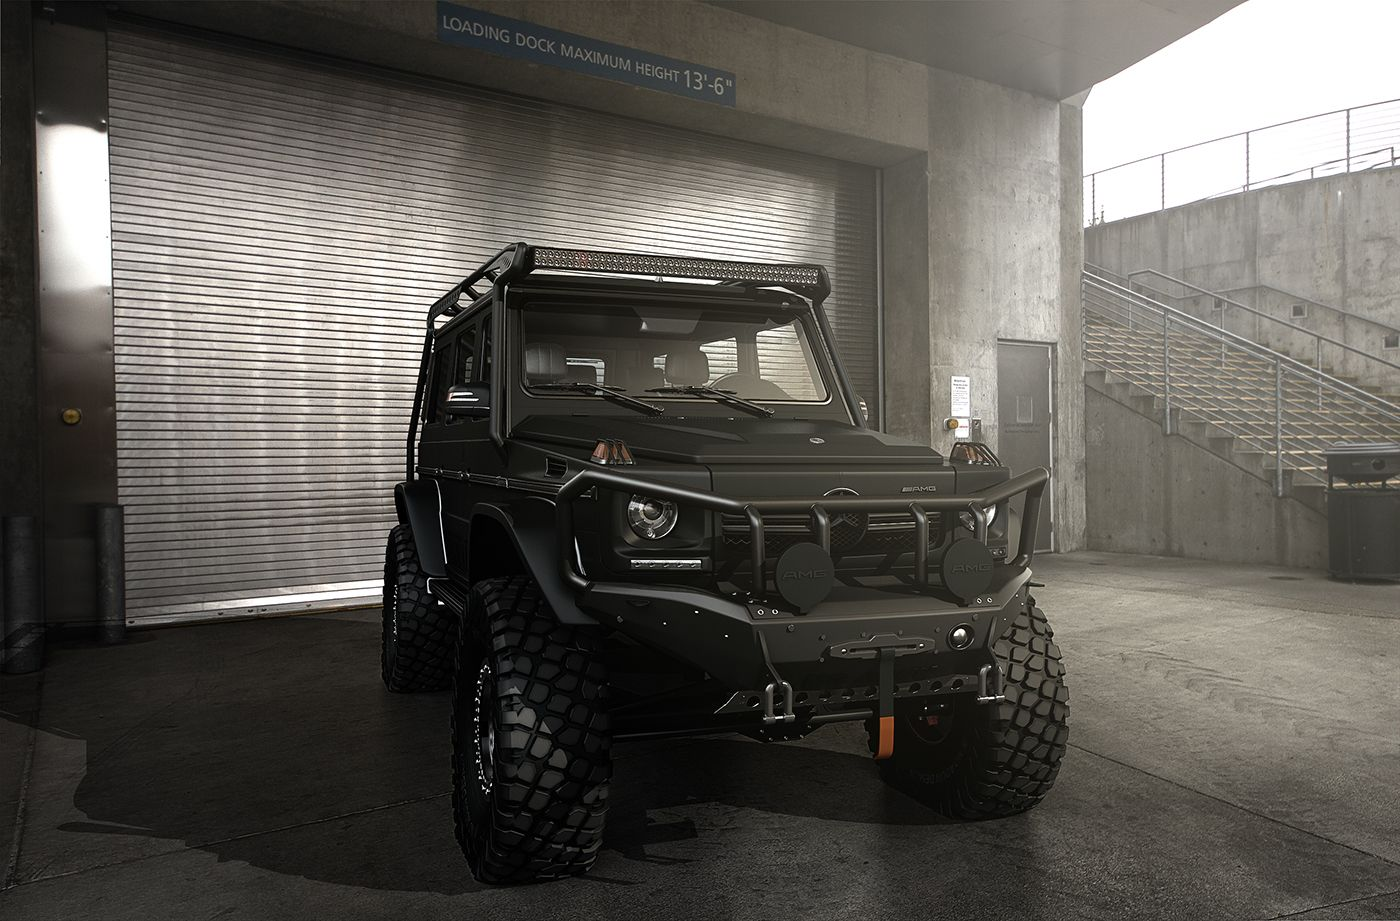 This Mercedes G Class Wouldn T Look Out Of Place In Batcave